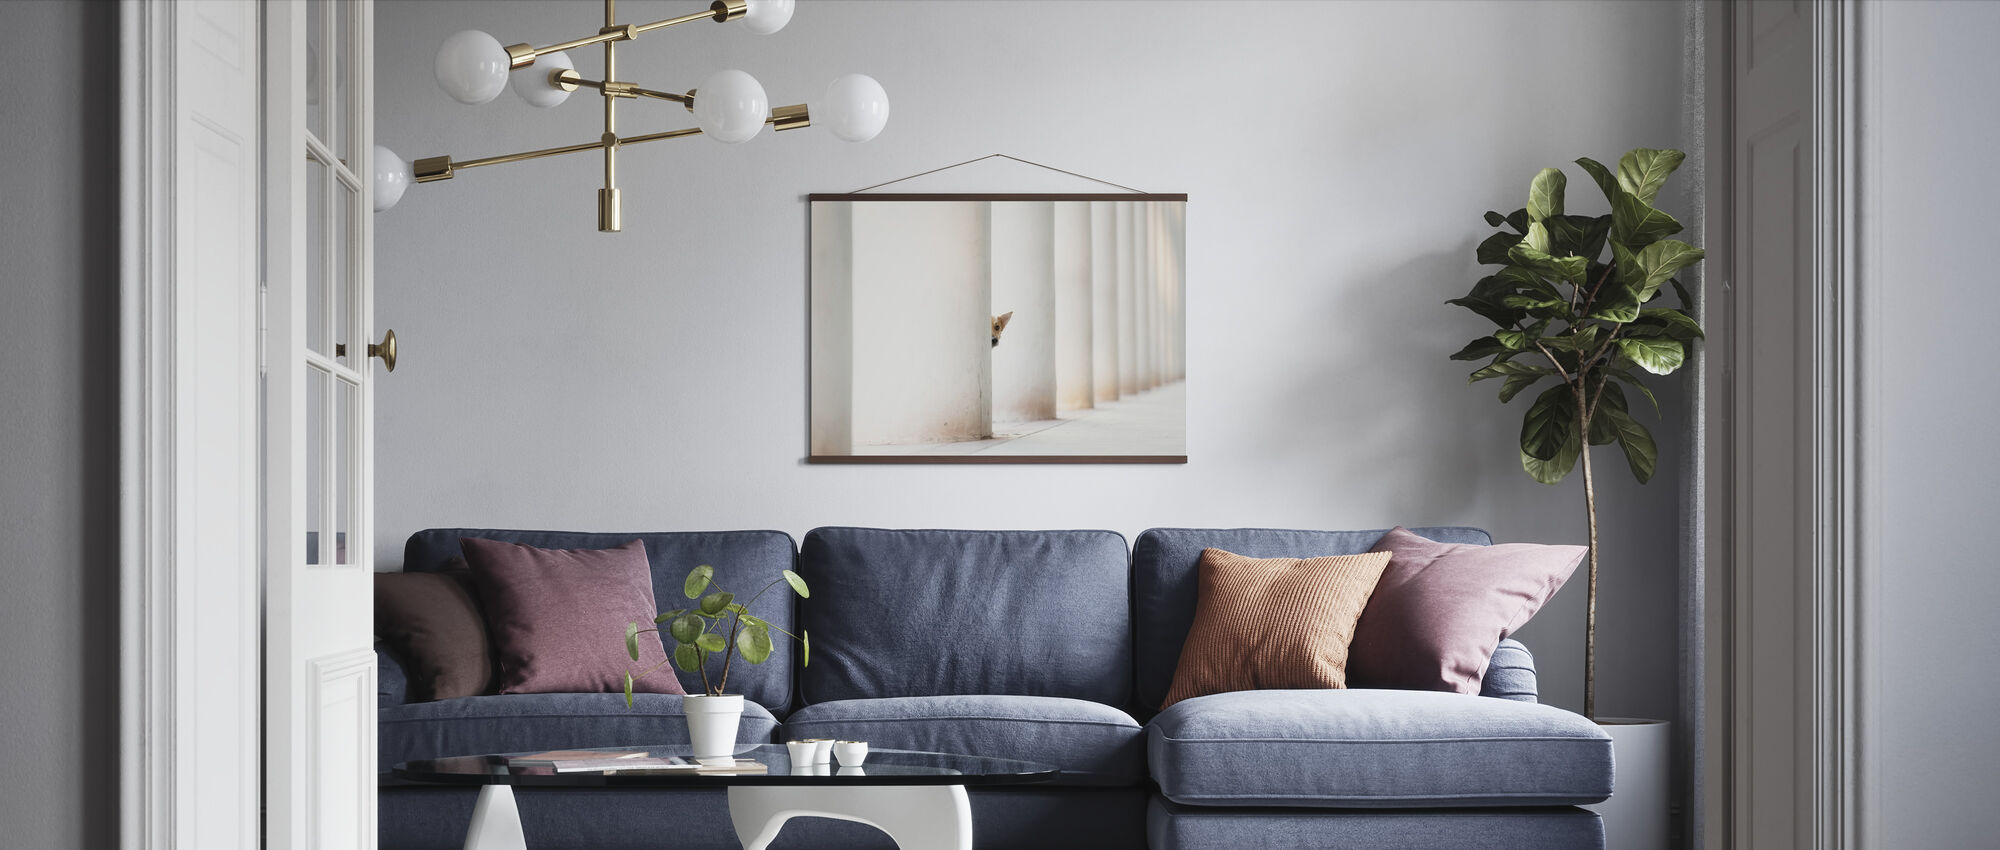 Bella and the Pillars of the Earth - Poster - Living Room